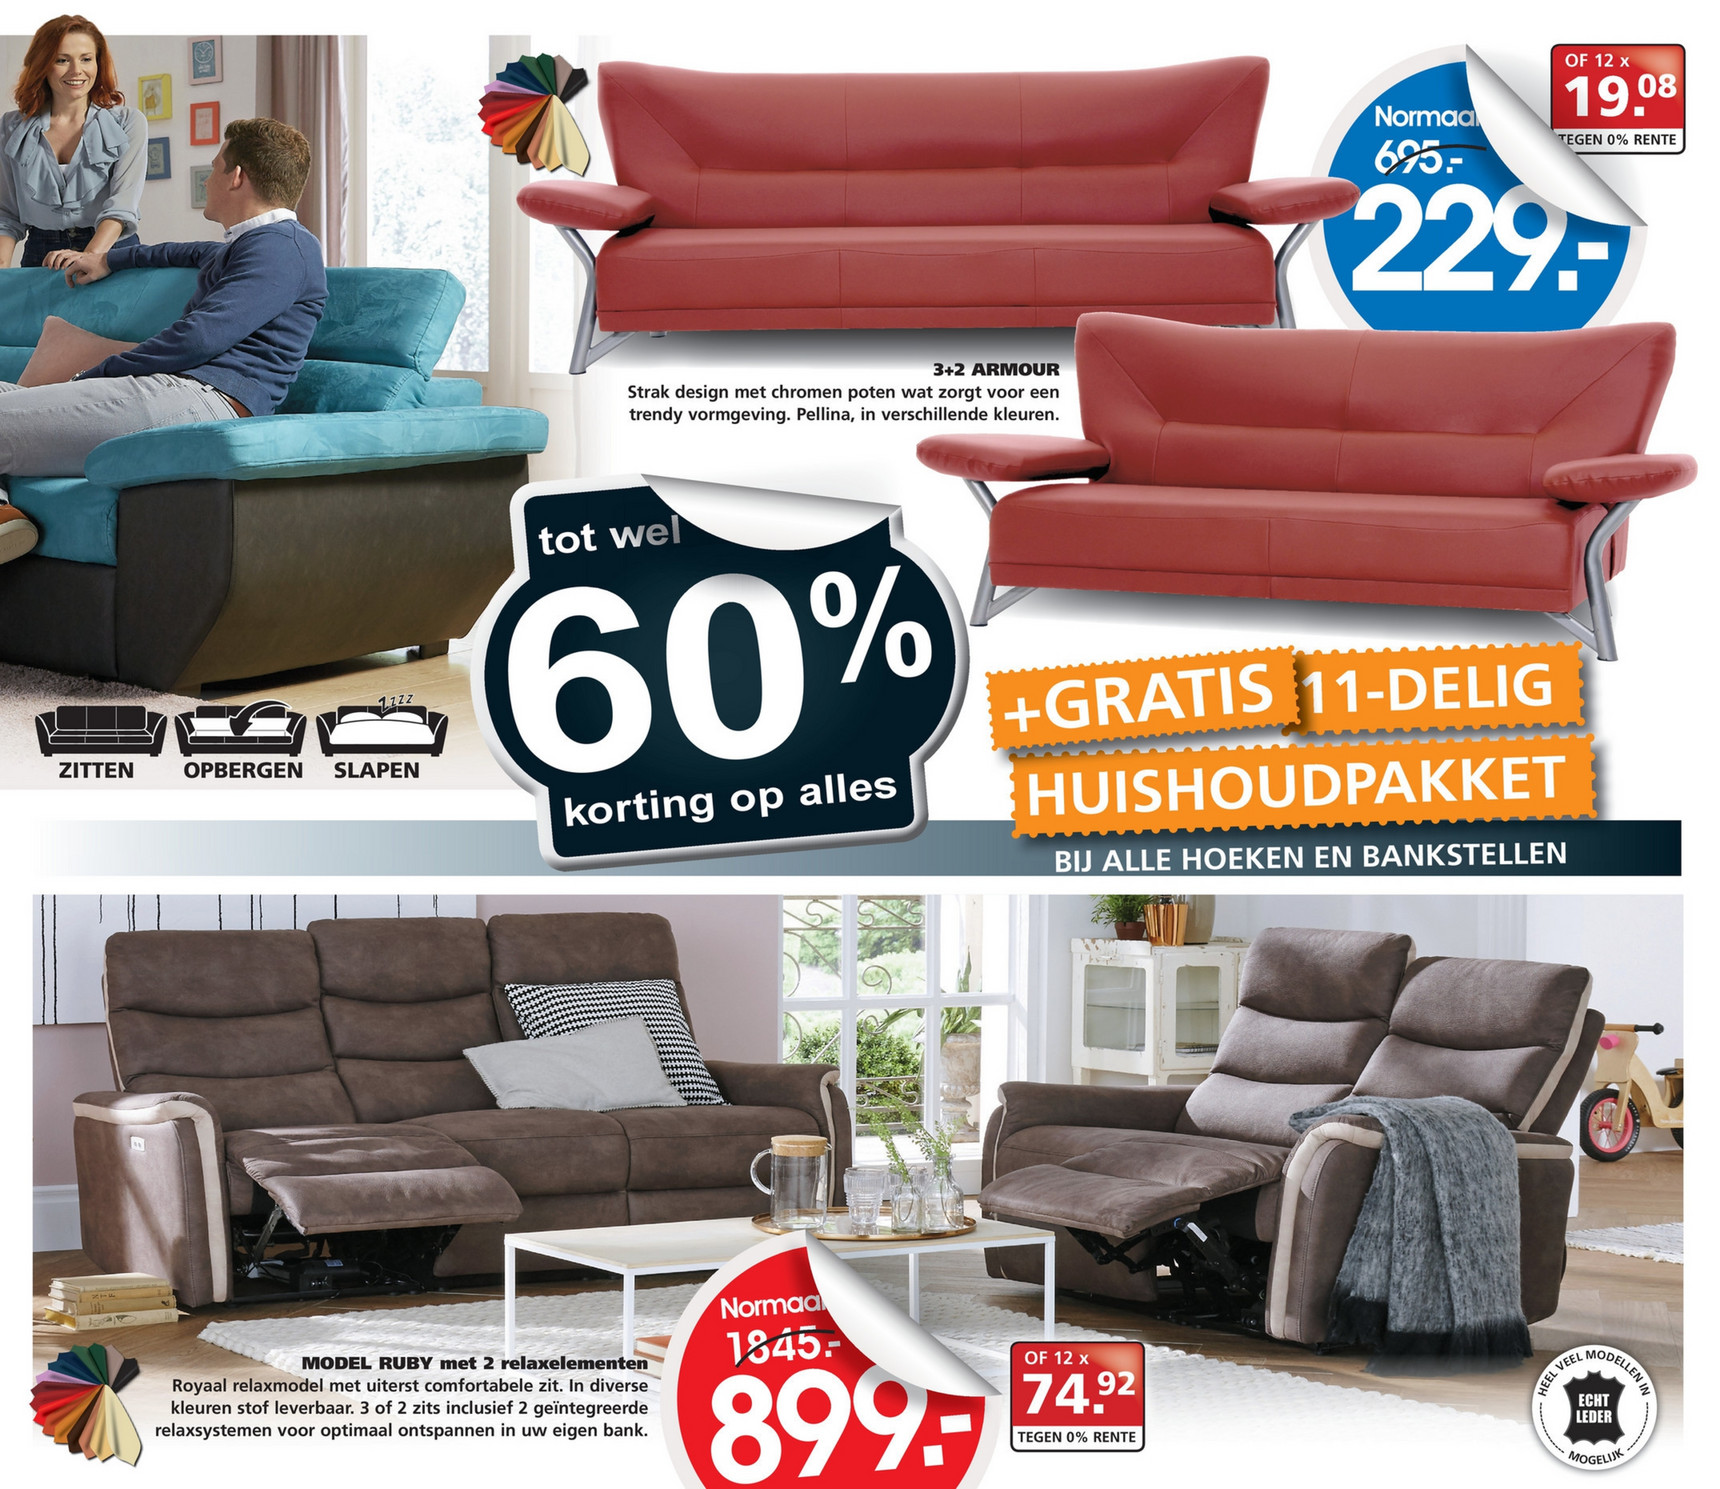 Seats And Sofas Bankstellen.Folderaanbiedingen Seats And Sofas Folder 28 November Tm 3